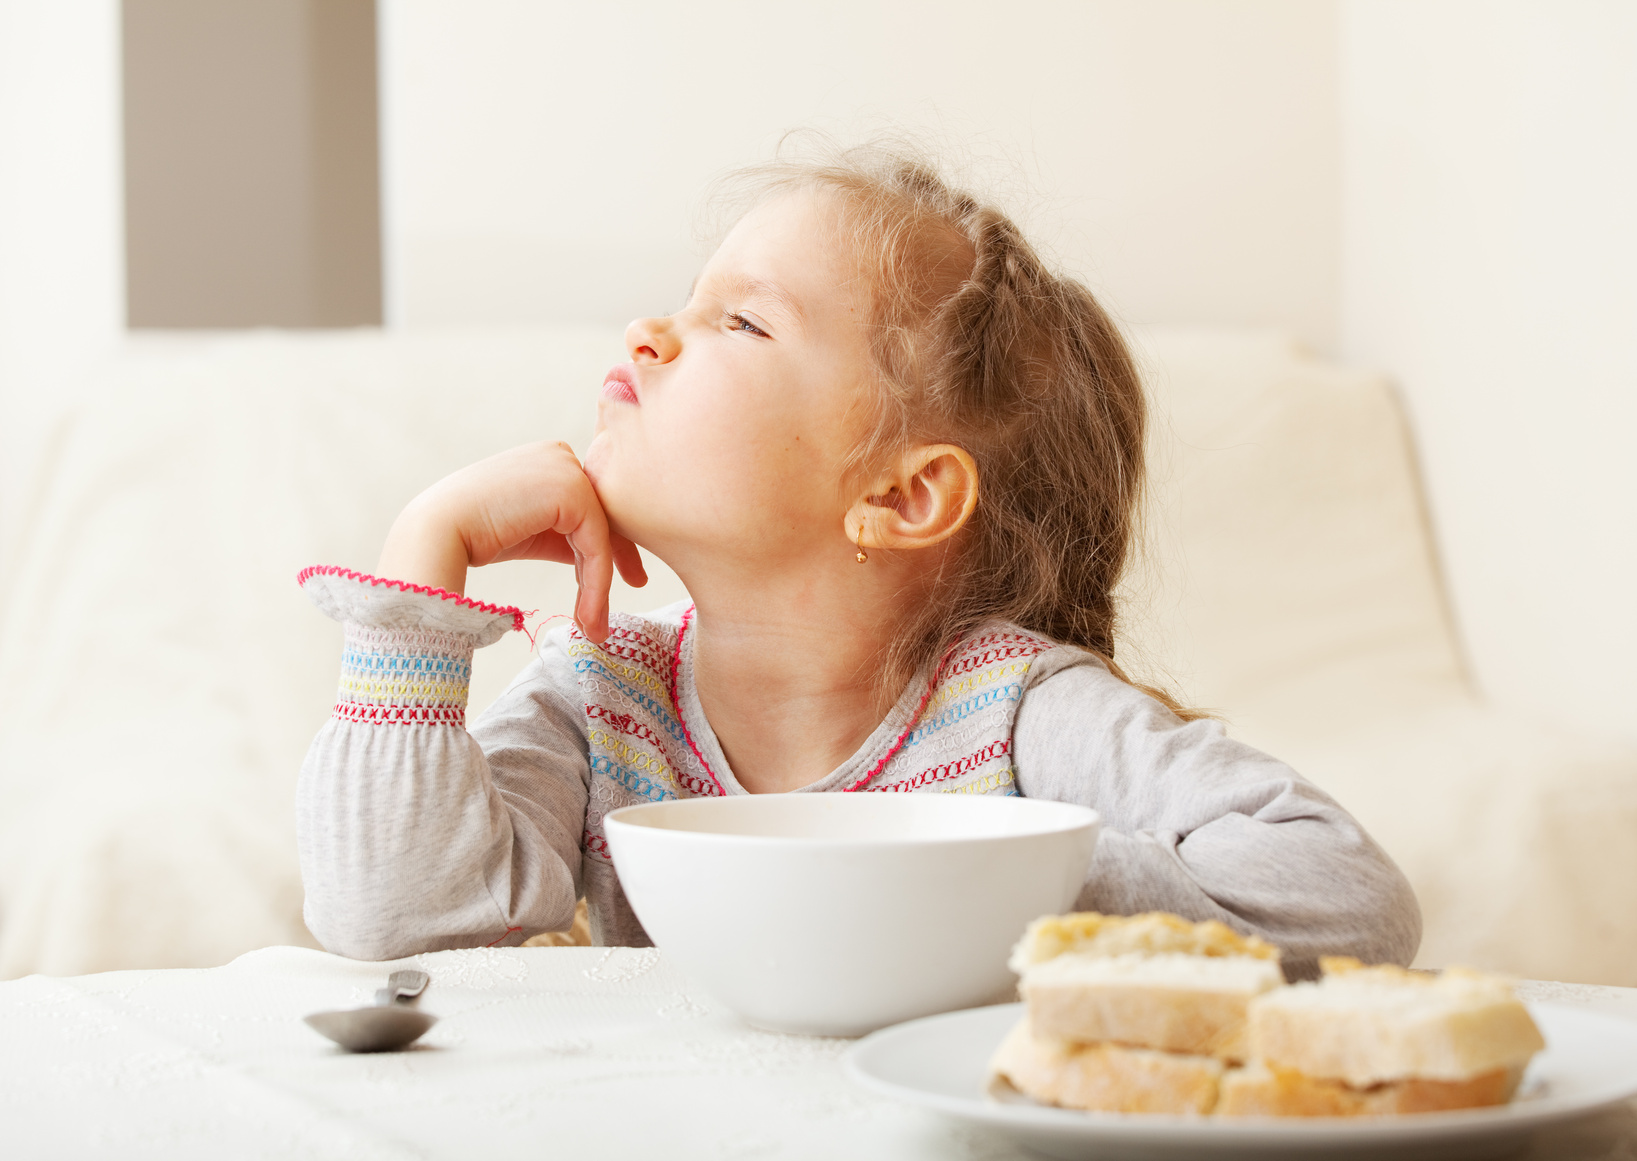 How to Guard Your Child from Developing Eating Disorders